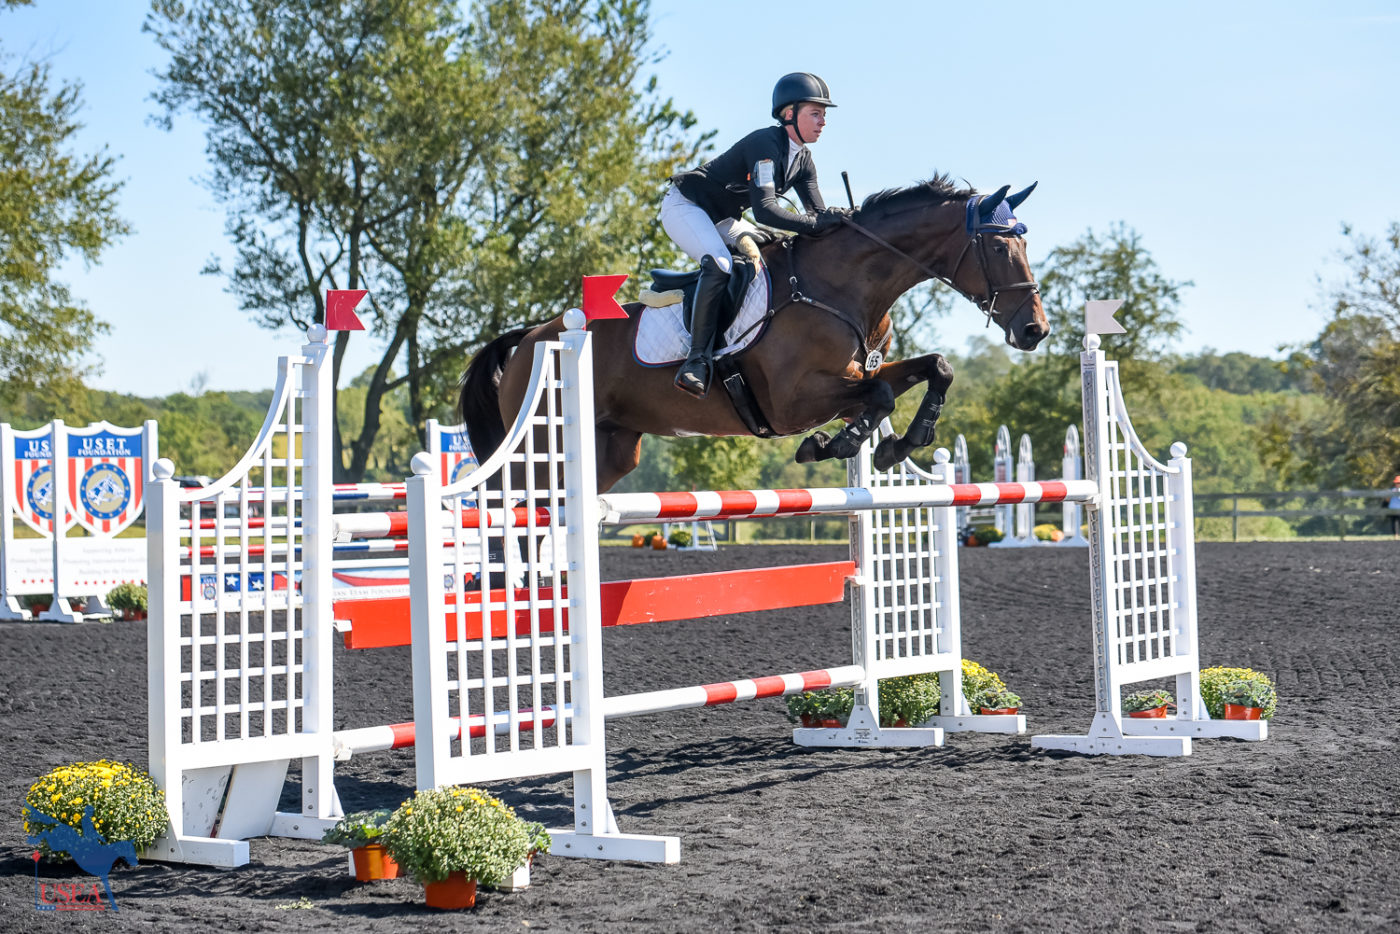 8th - Alexandra Baugh and Mr Candyman - 33.2